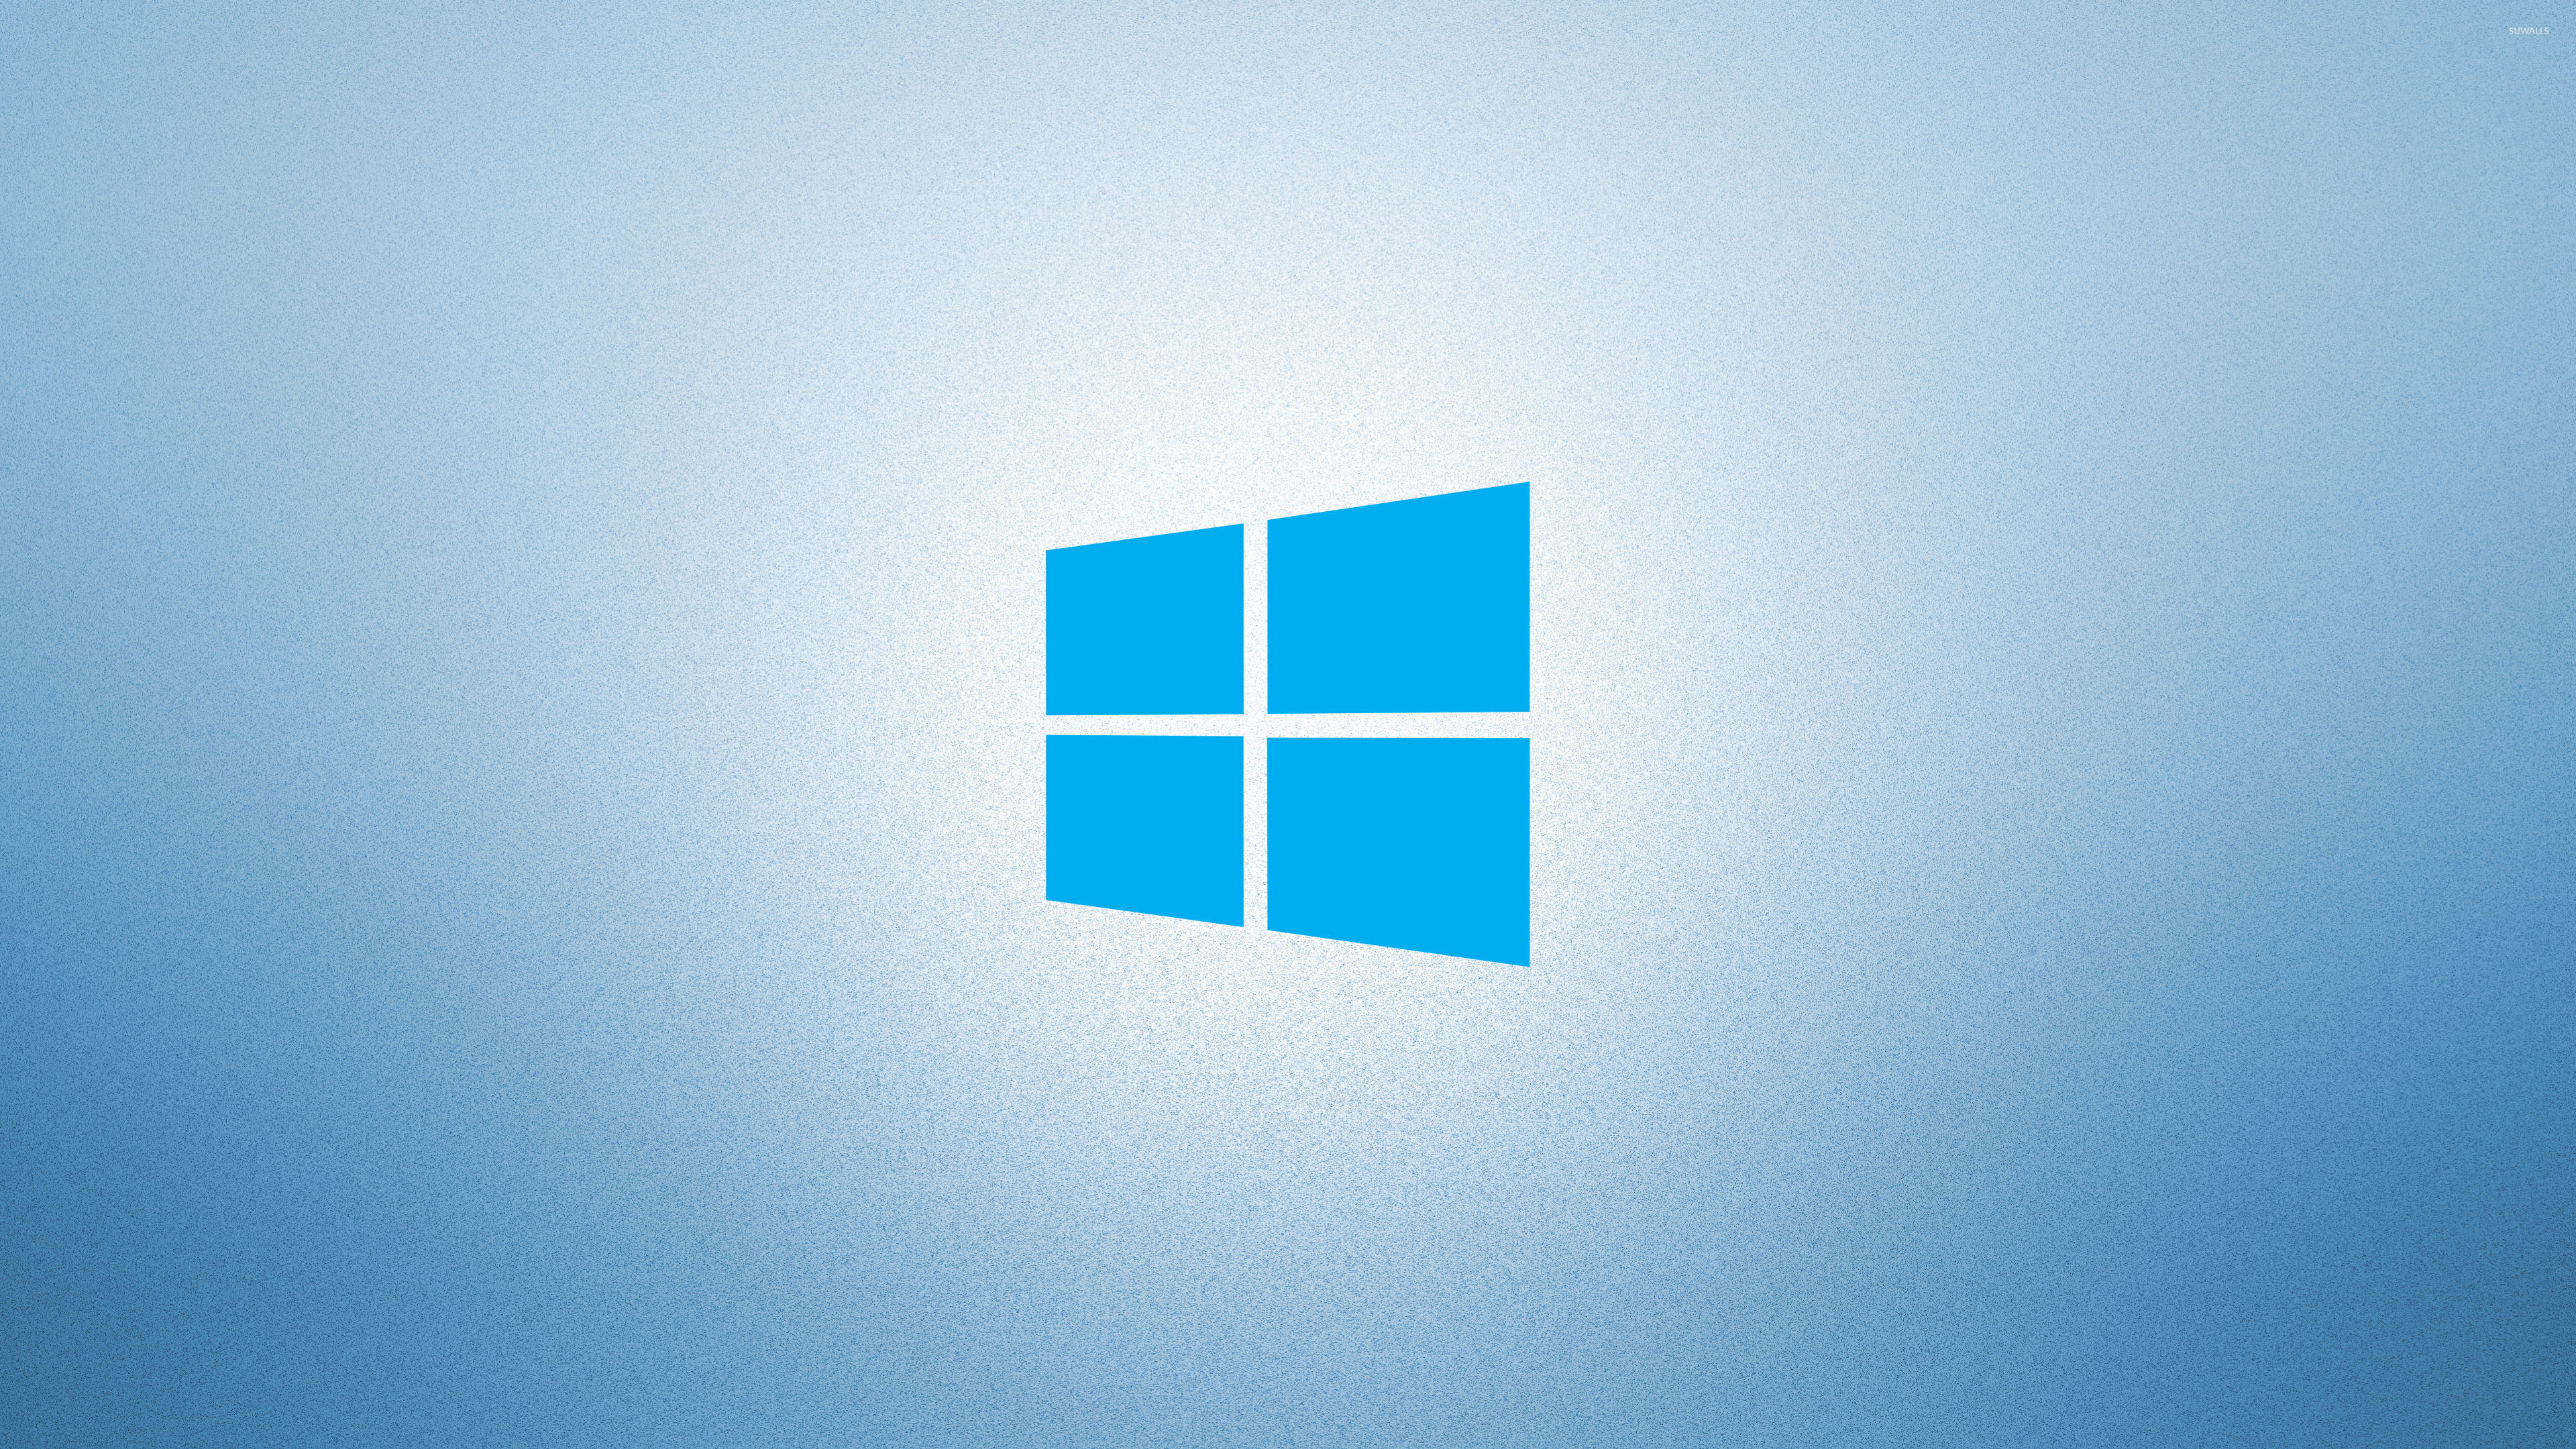 Free Download Windows 10 On Light Blue Simple Blue Logo Wallpaper